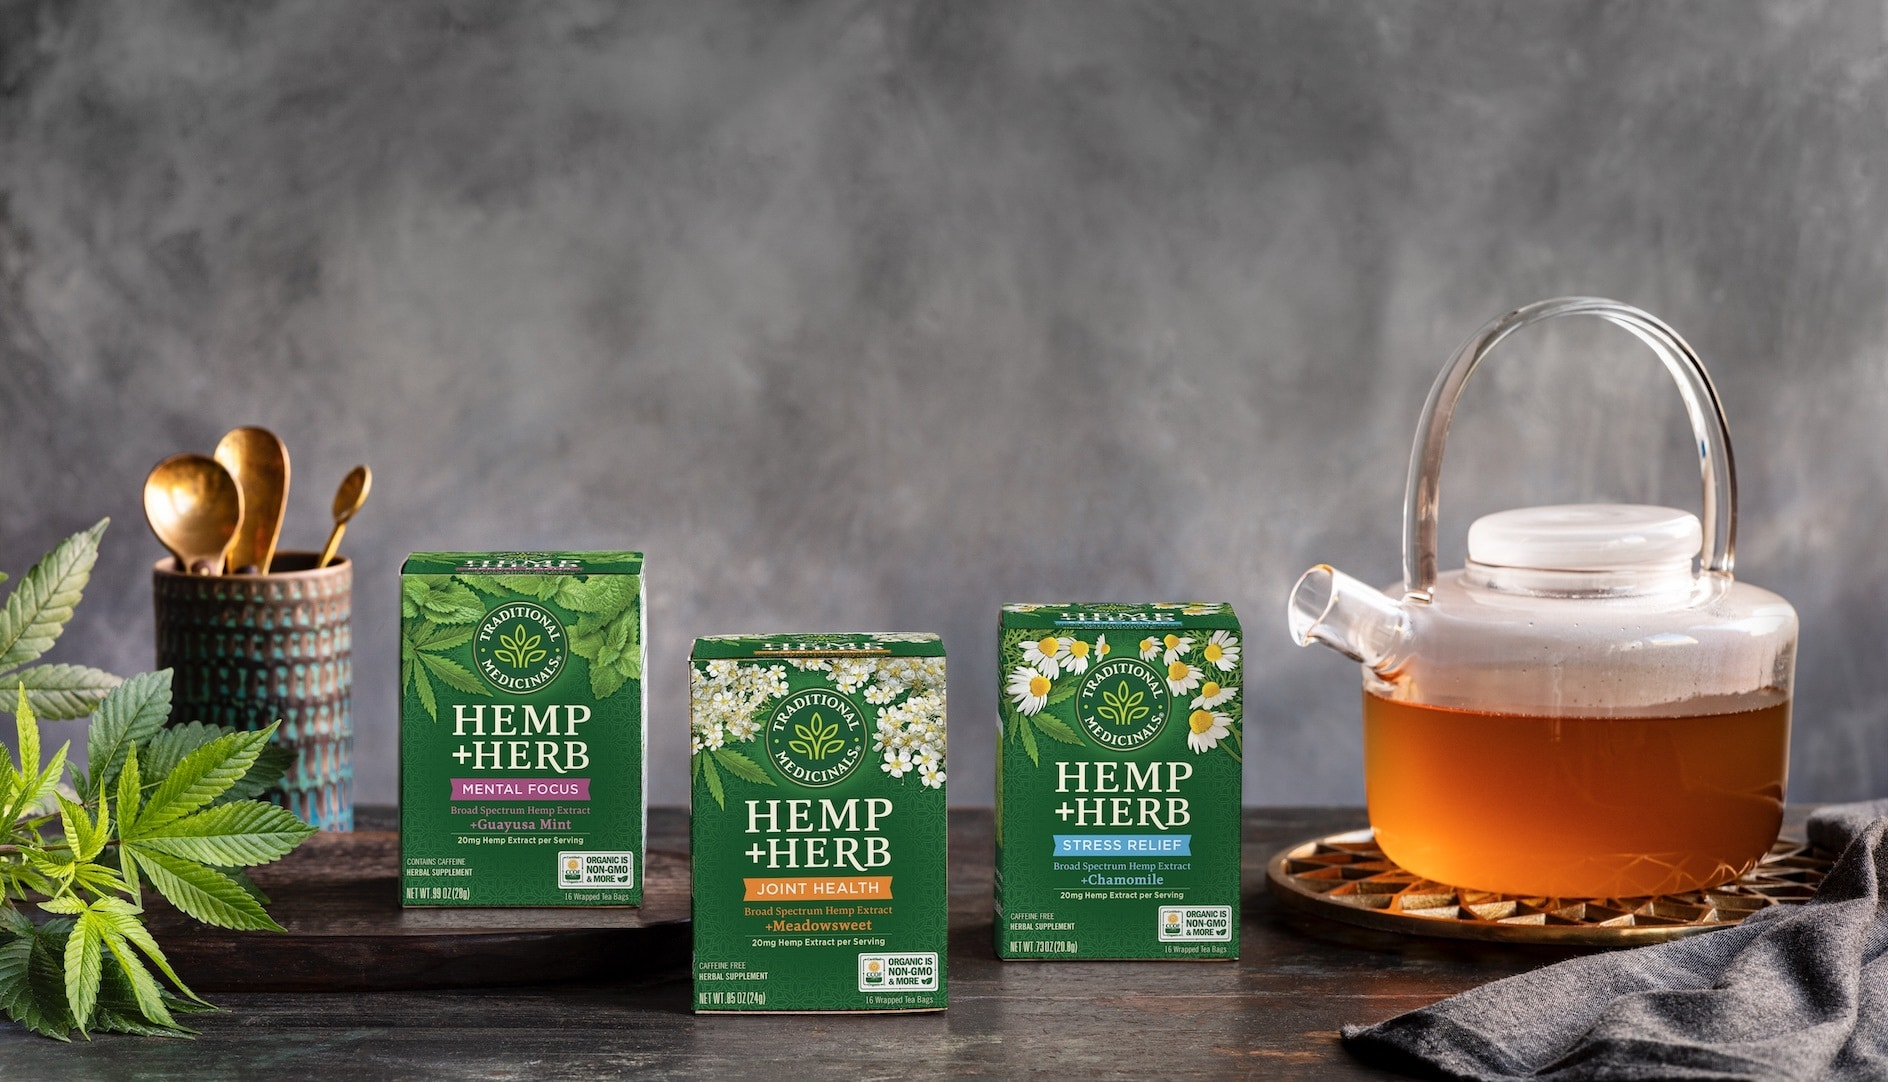 Traditional Medicinals Introduces New Line of Hemp+Herb Bagged Teas